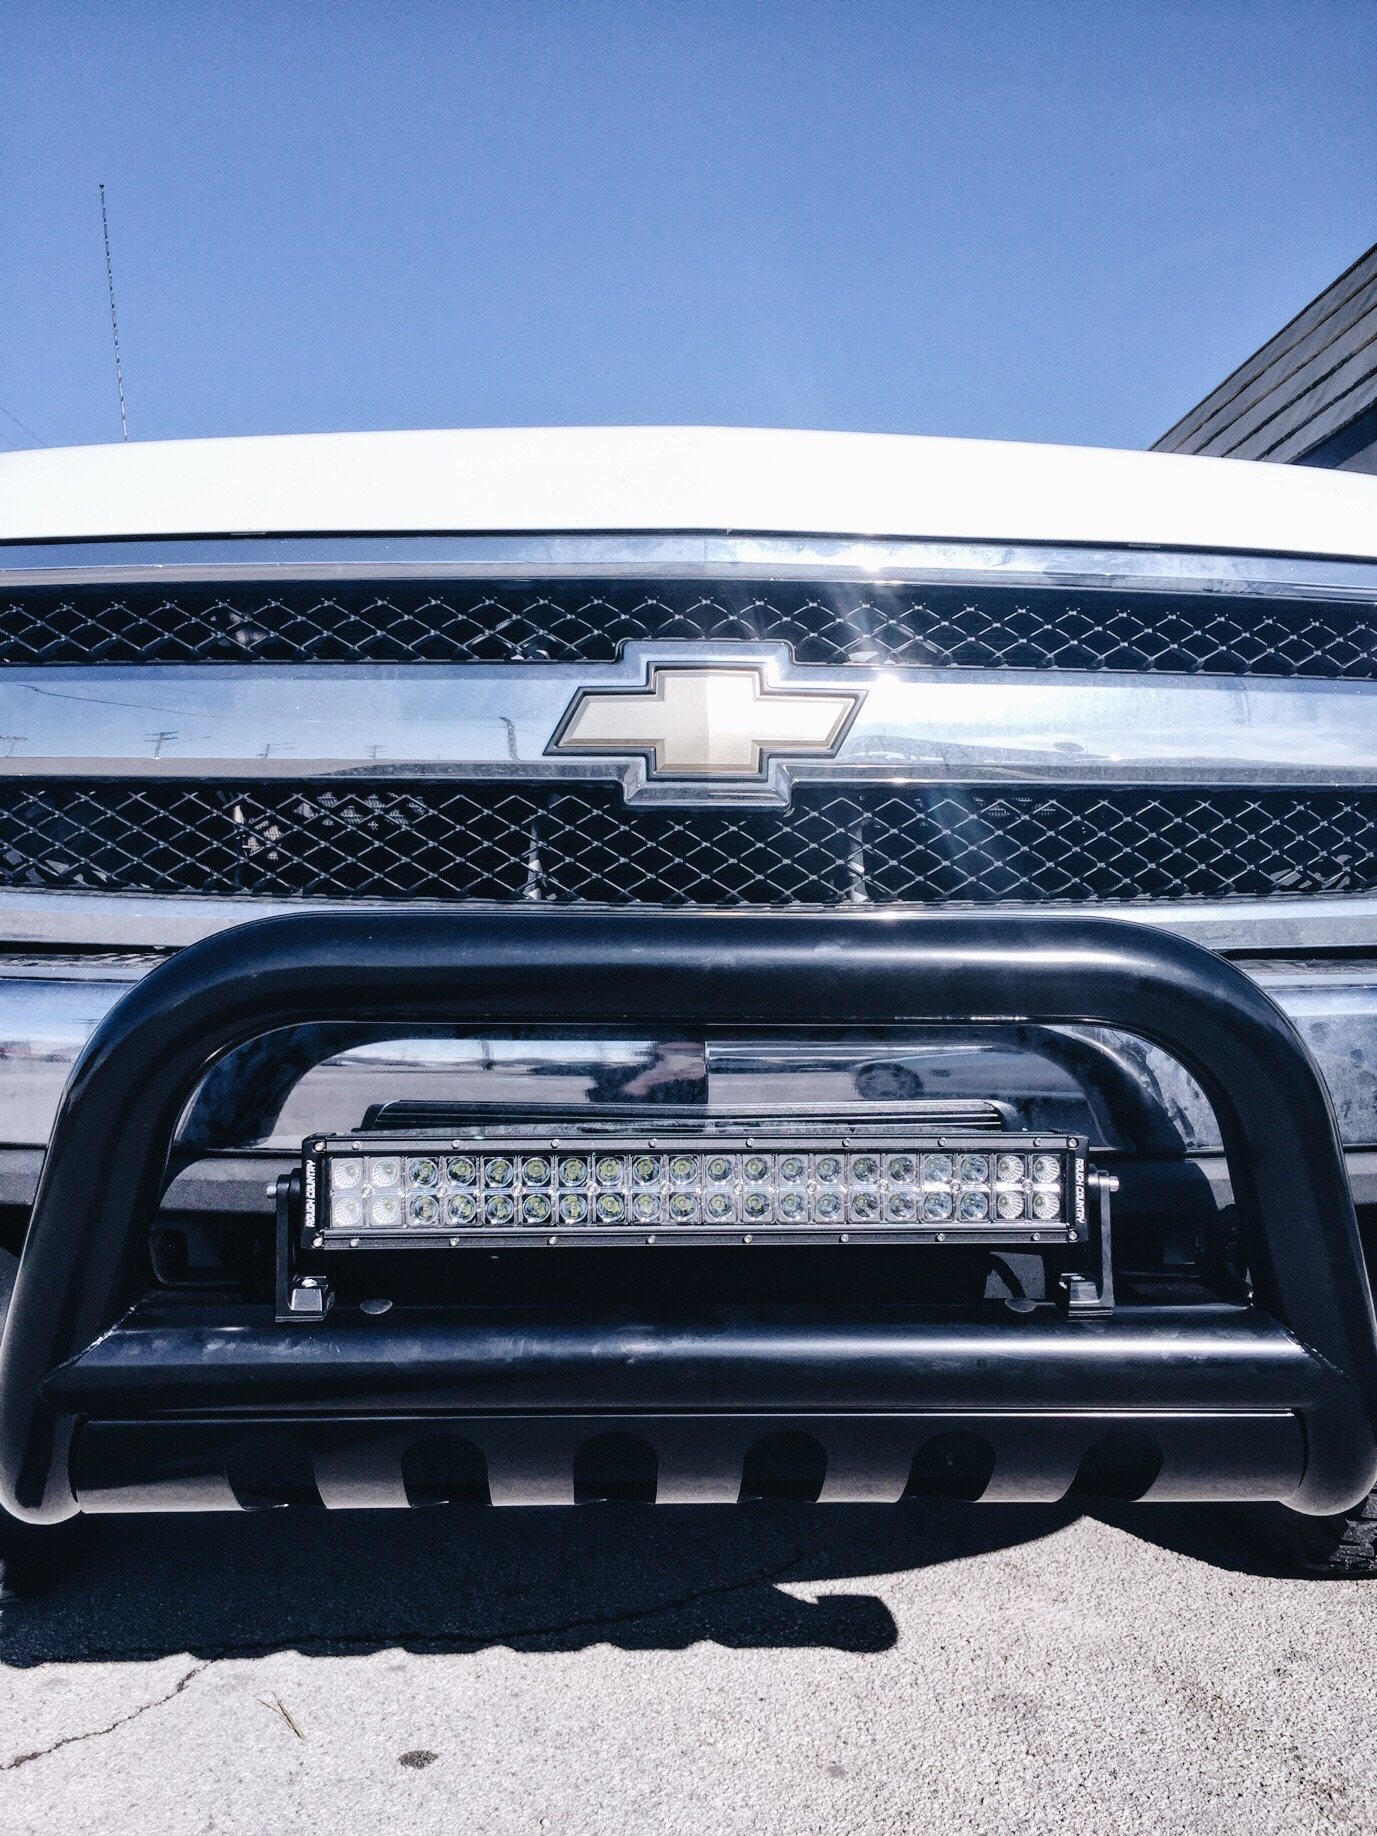 Chevy grill w/bull bar + light bar